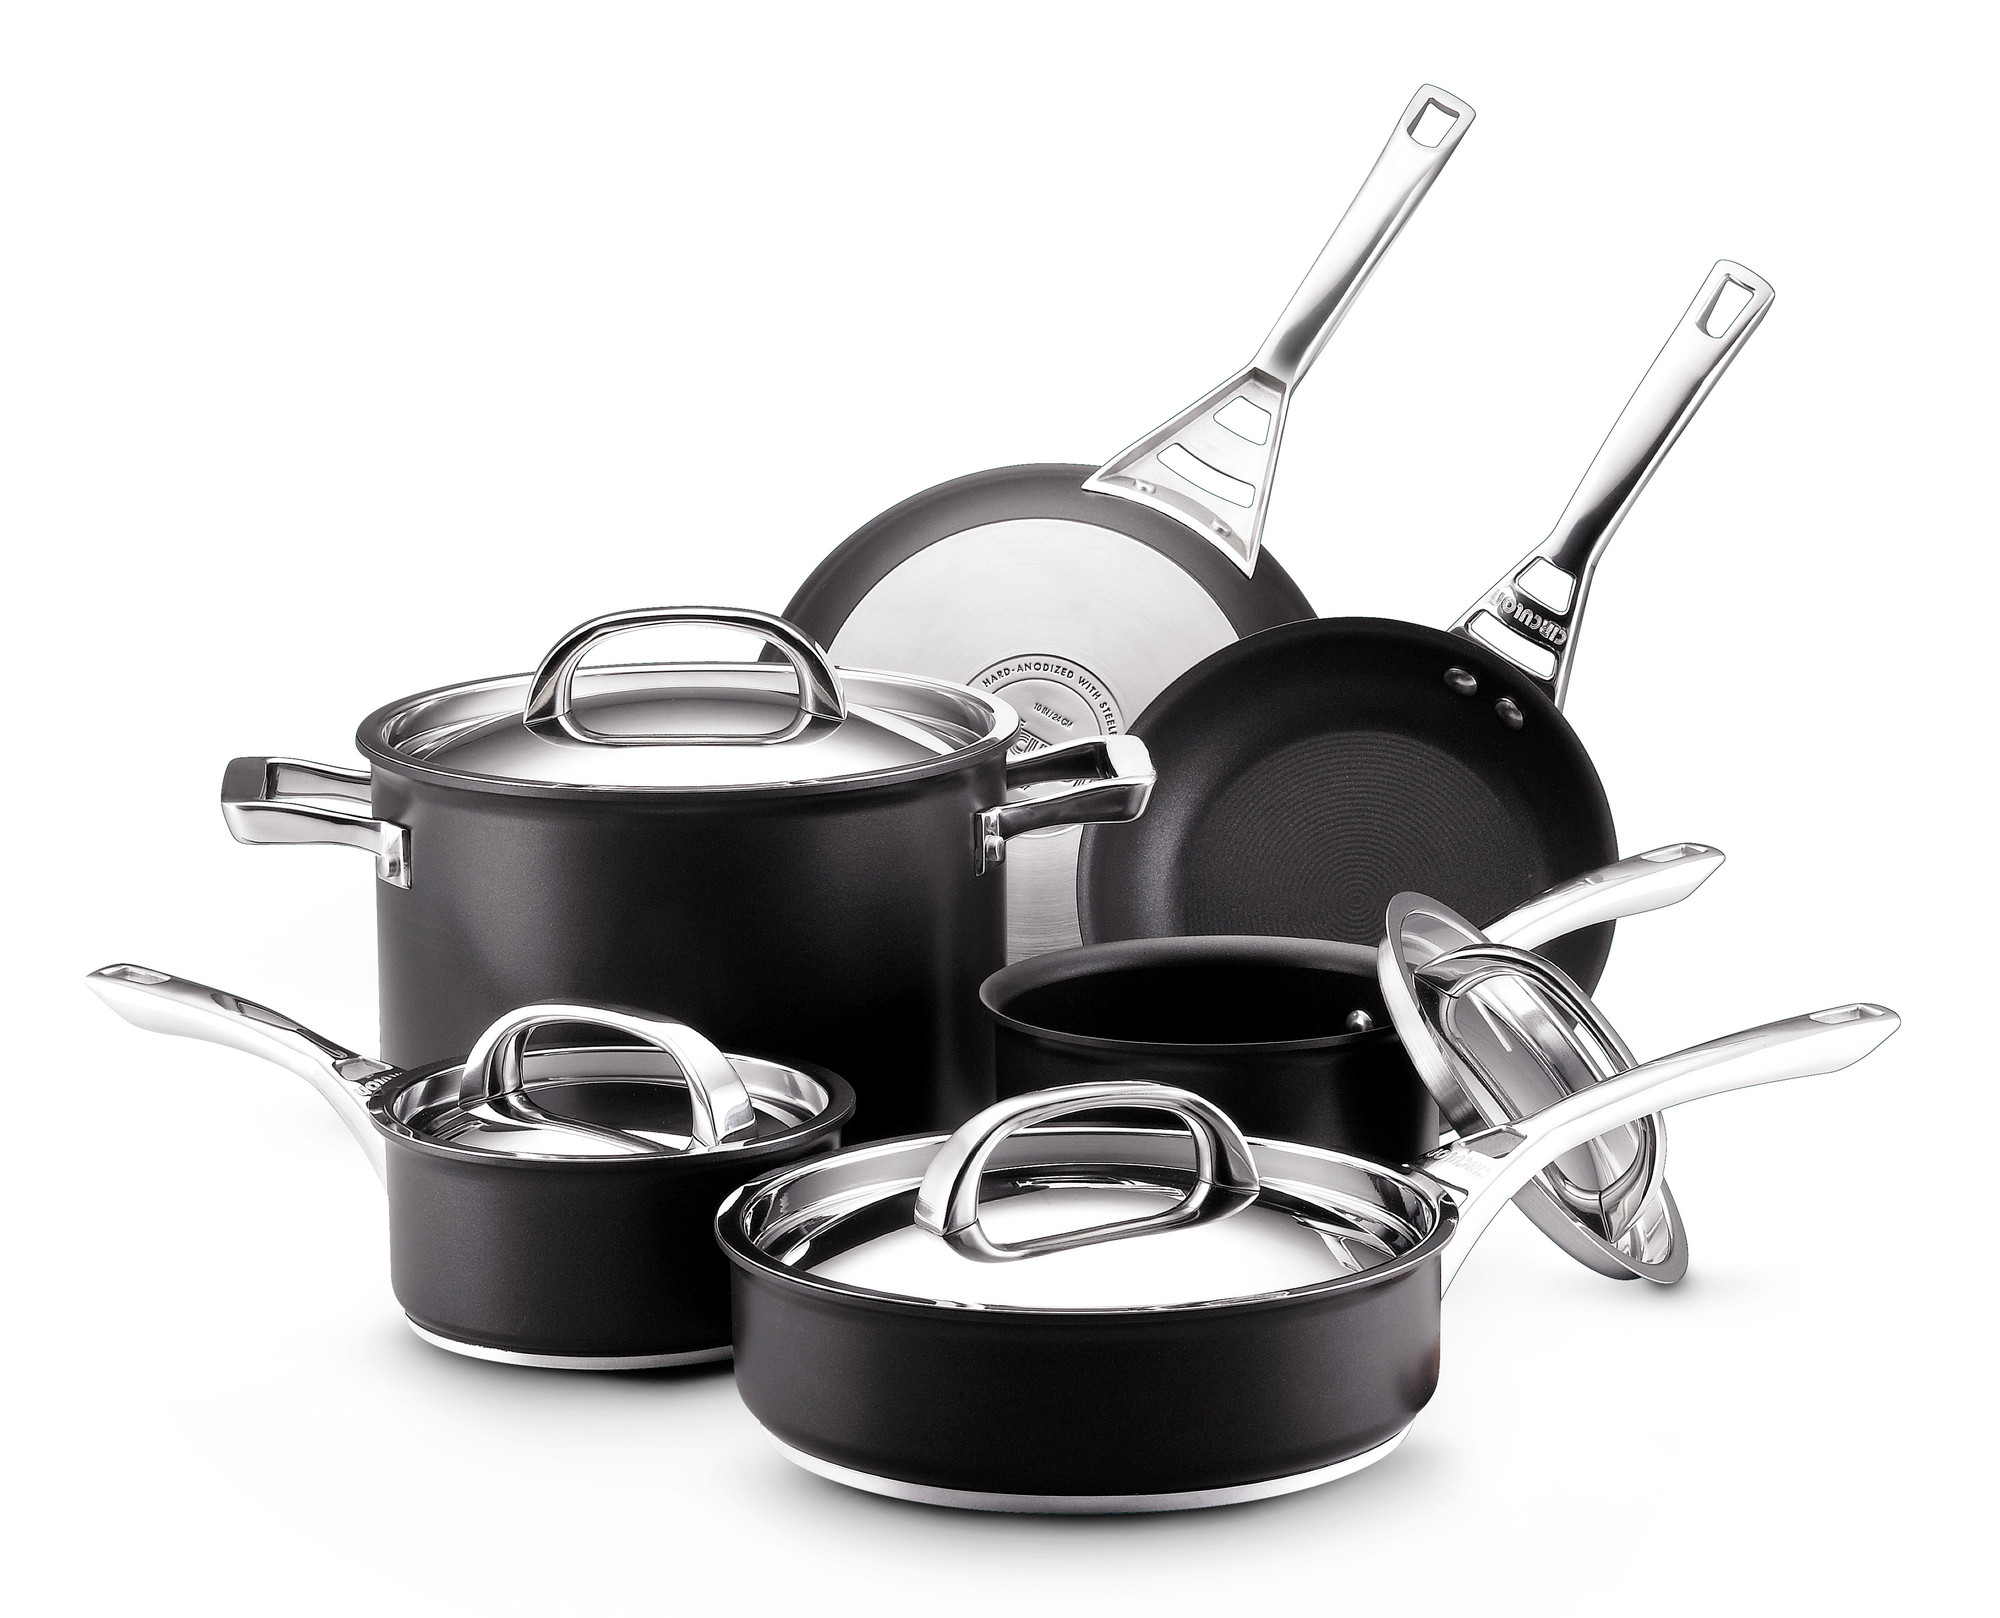 Simply Calphalon Nonstick 10 Piece Set Review : Hard Anodized